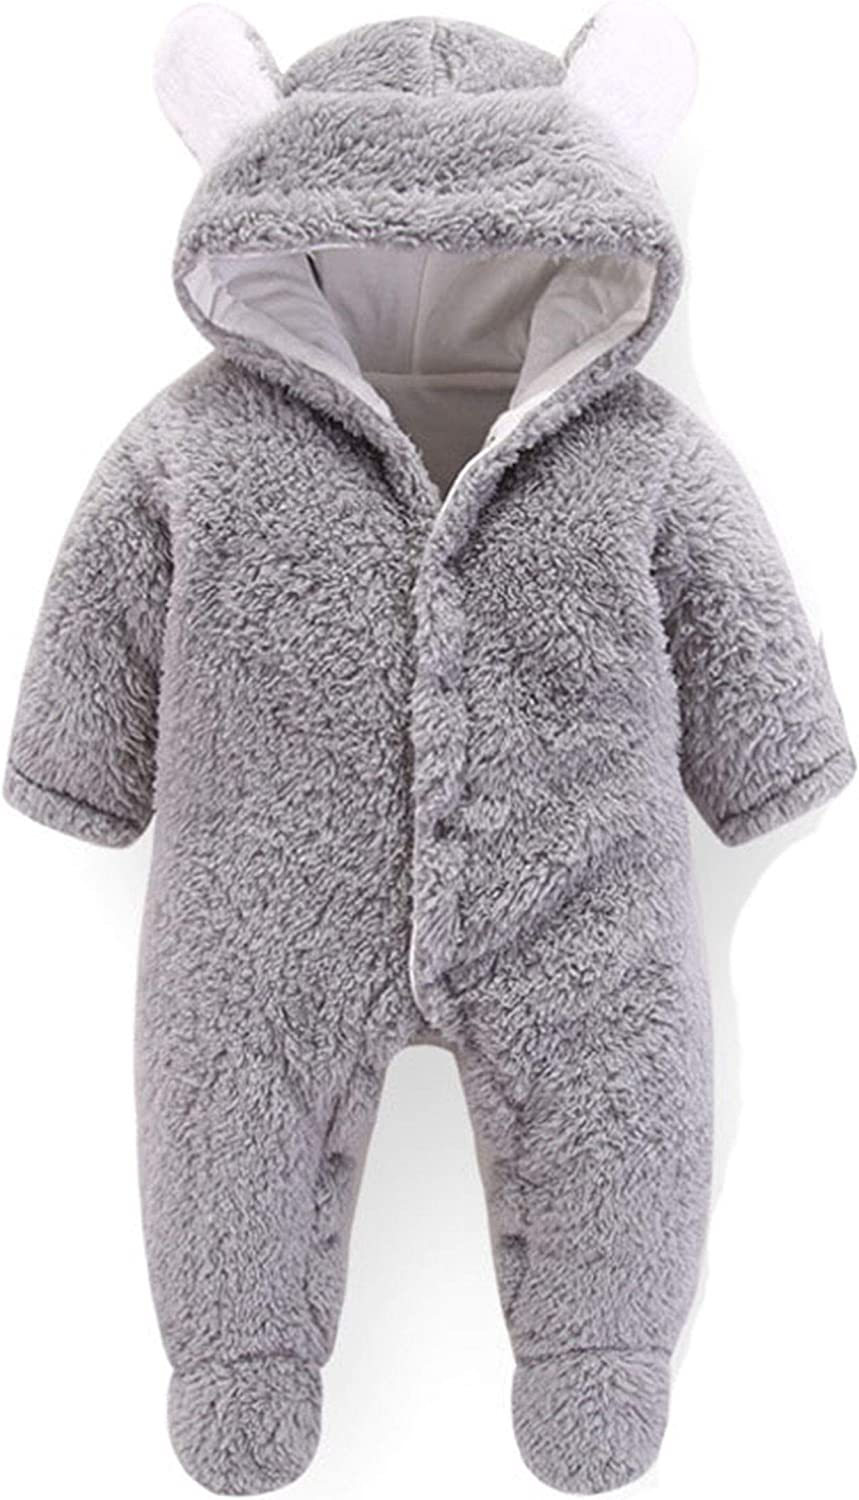 Infant Baby Jumpsuit Newborn Outstanding Hooded Bodysuit Plush Footed Romper Reservation